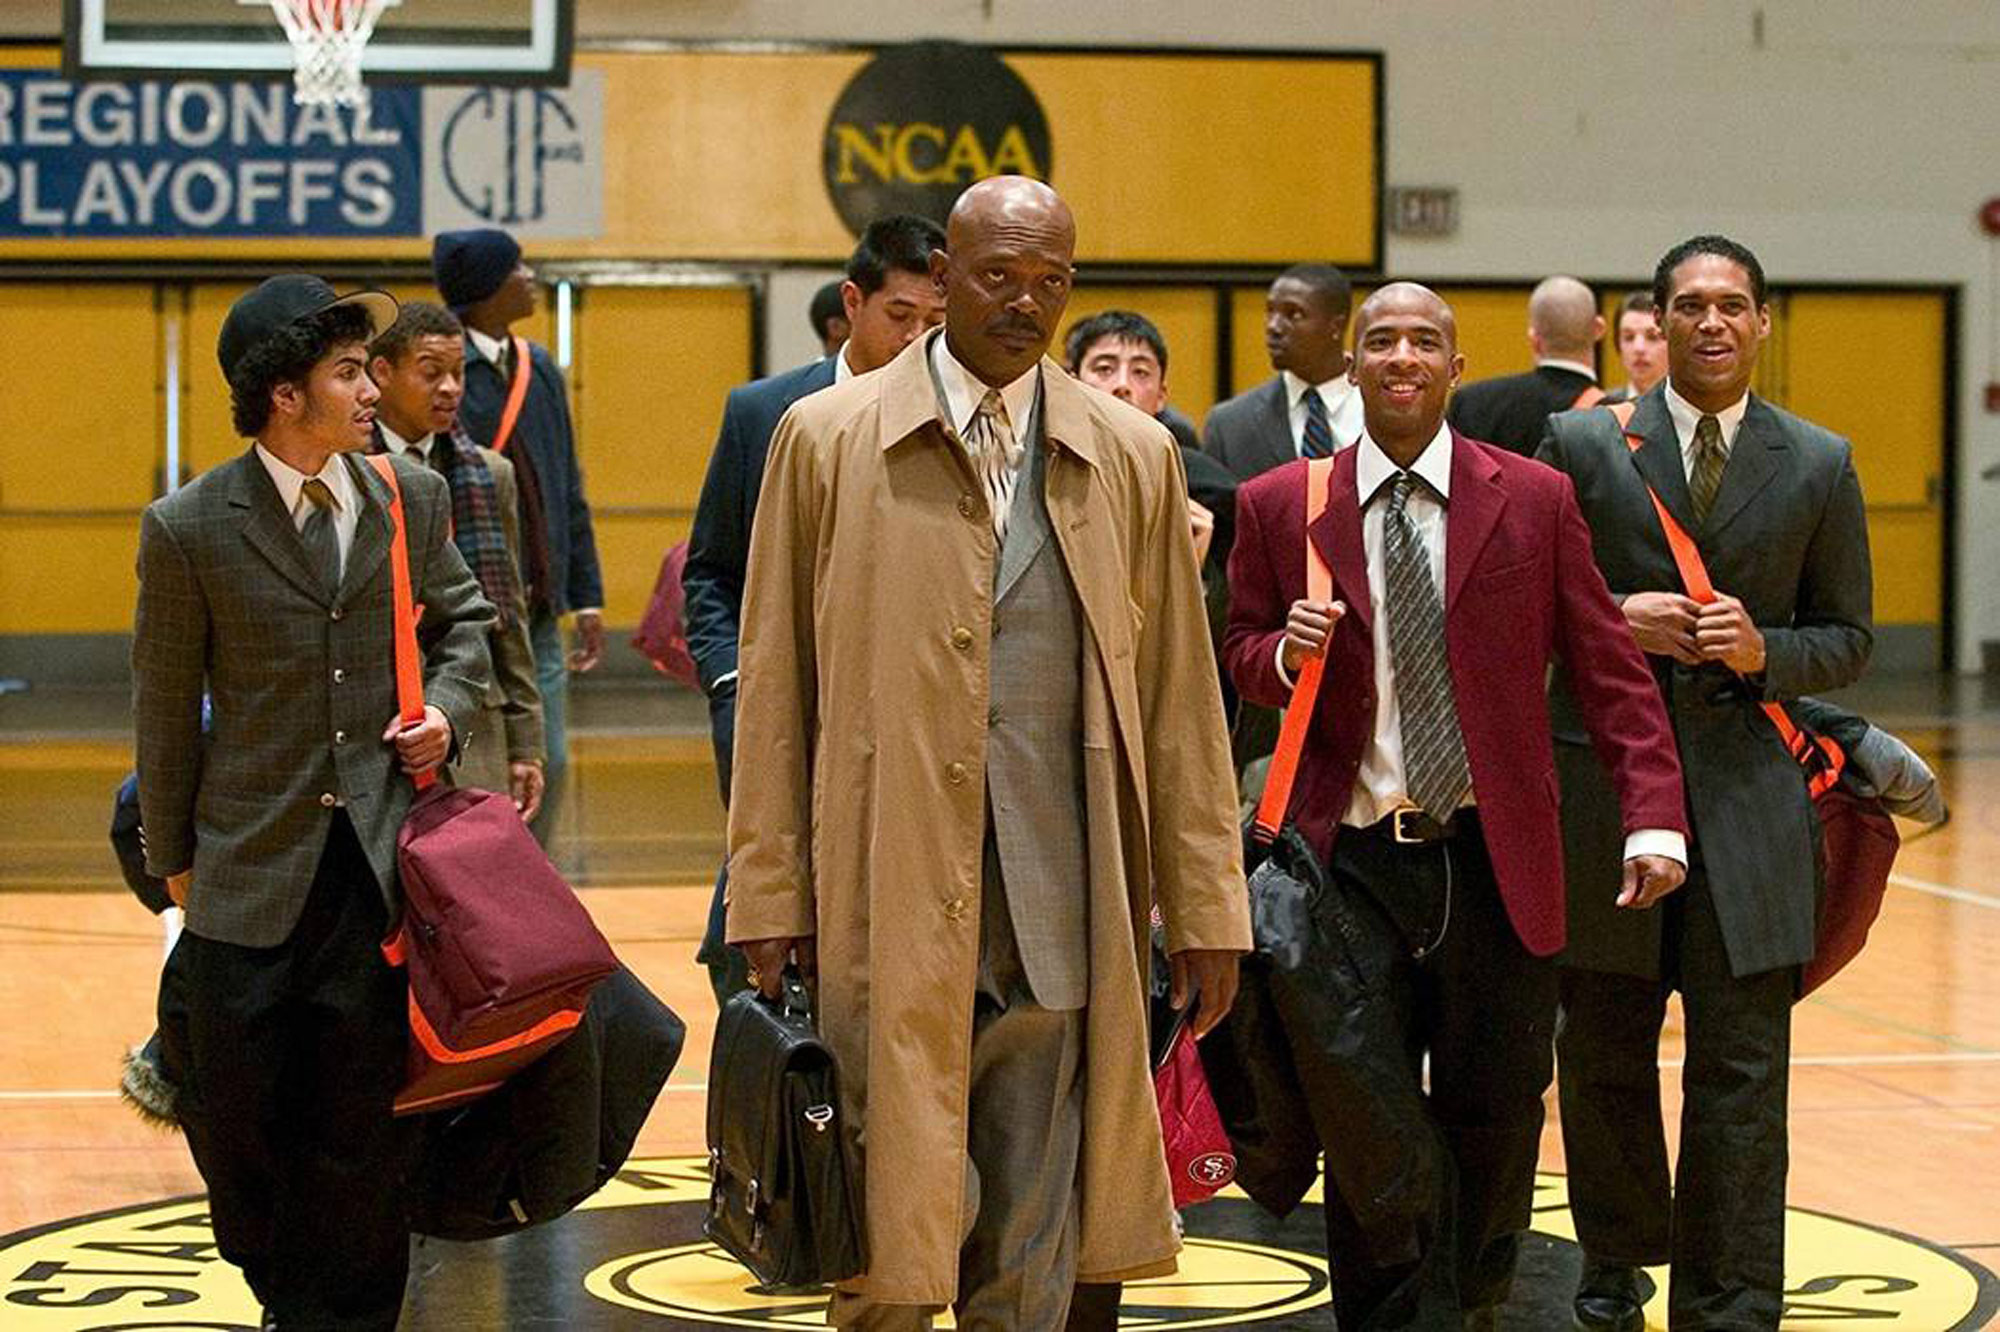 non-fiction films: Coach Carter